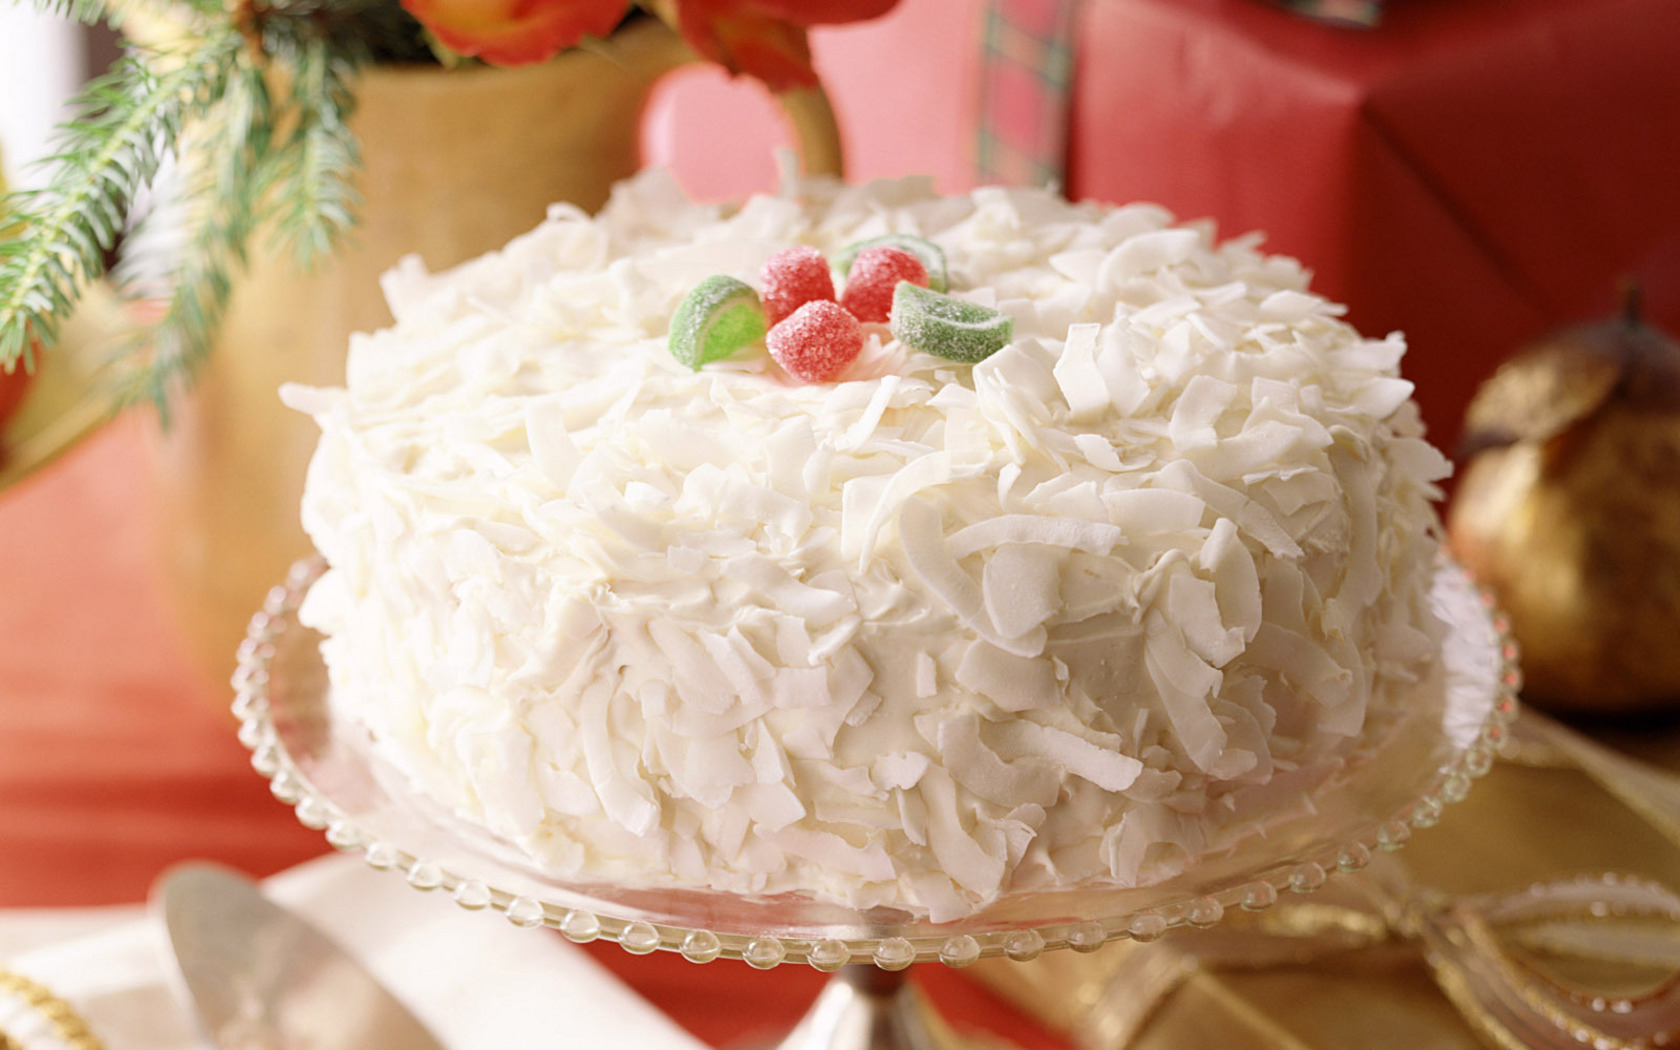 Delicious Cake Wallpapers And Images Wallpapers